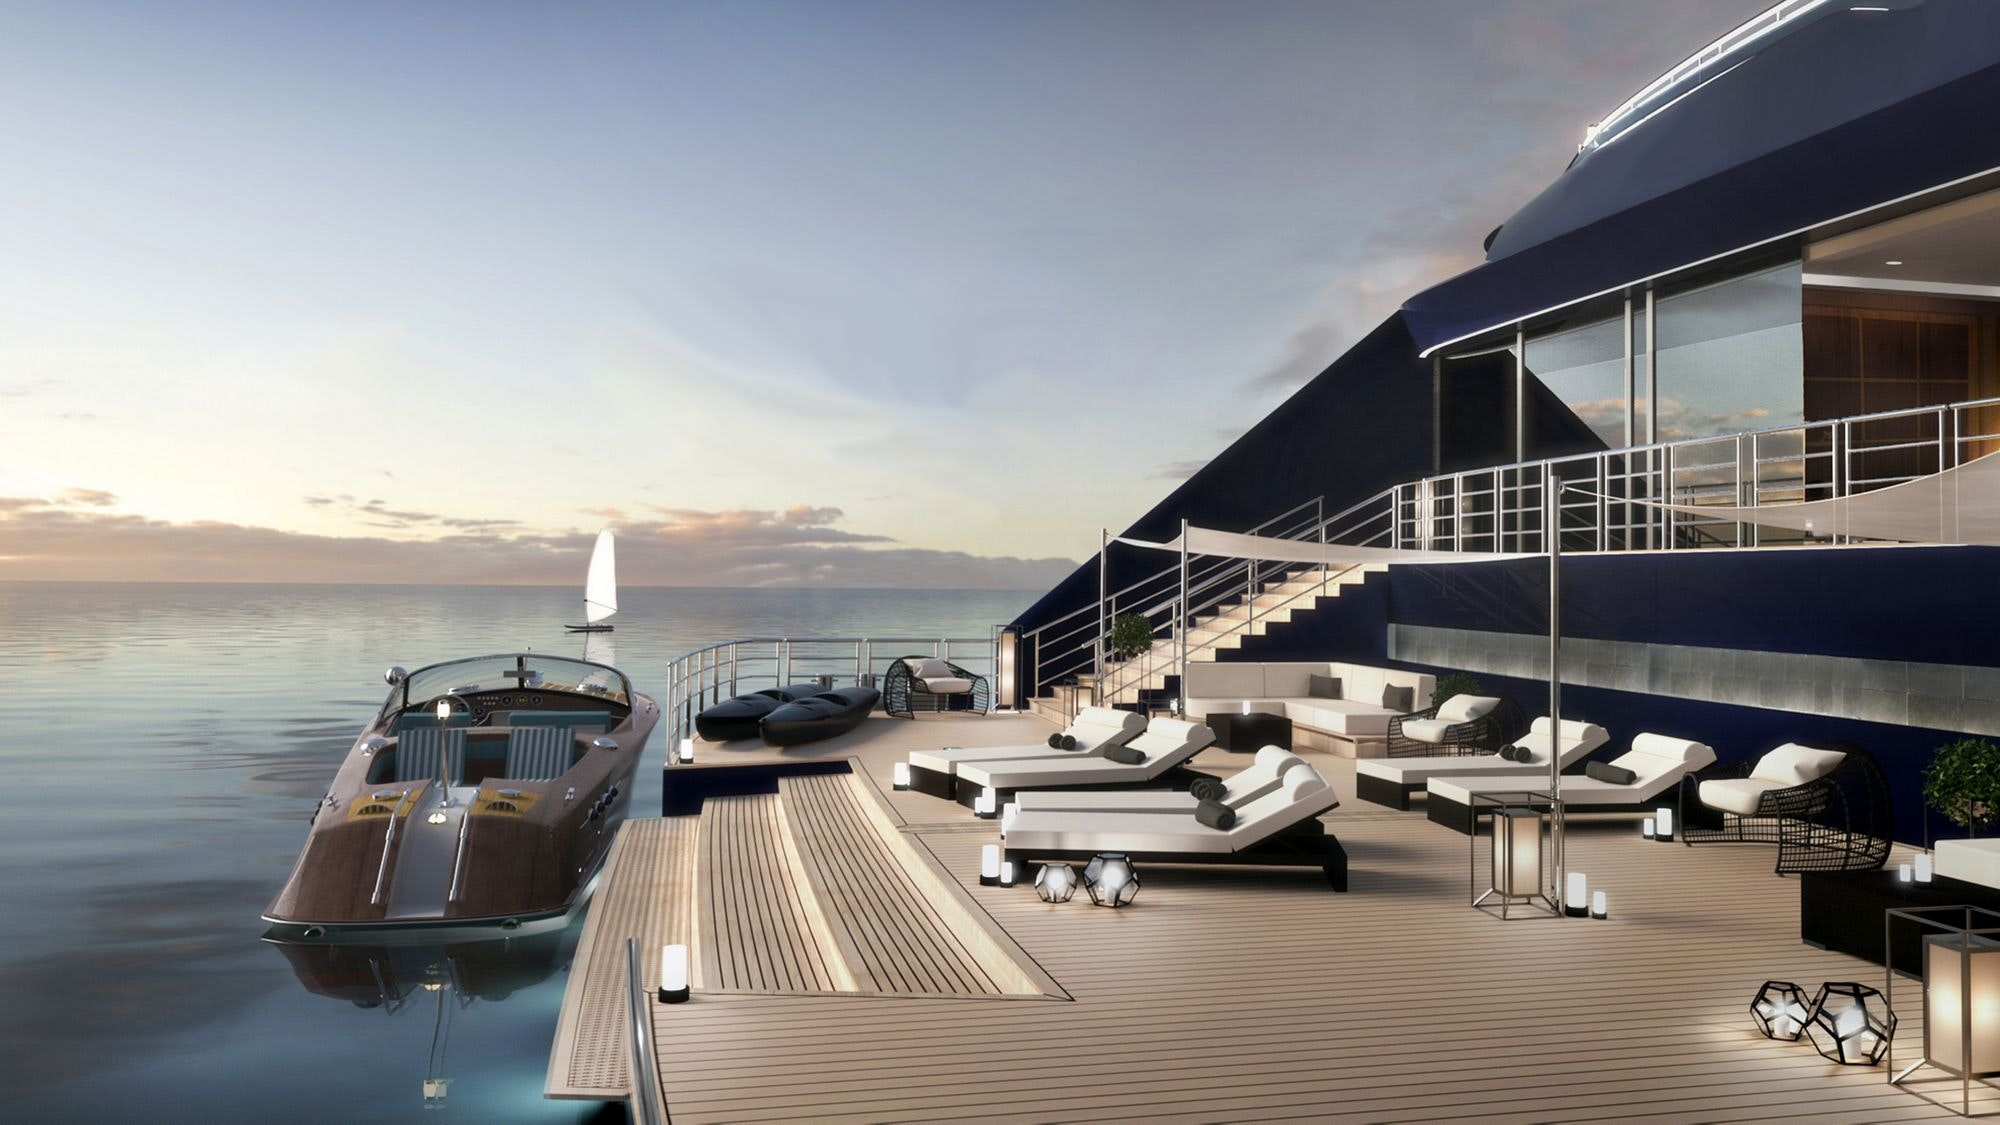 A rendering of a Ritz-Carlton yacht's open-air stern area